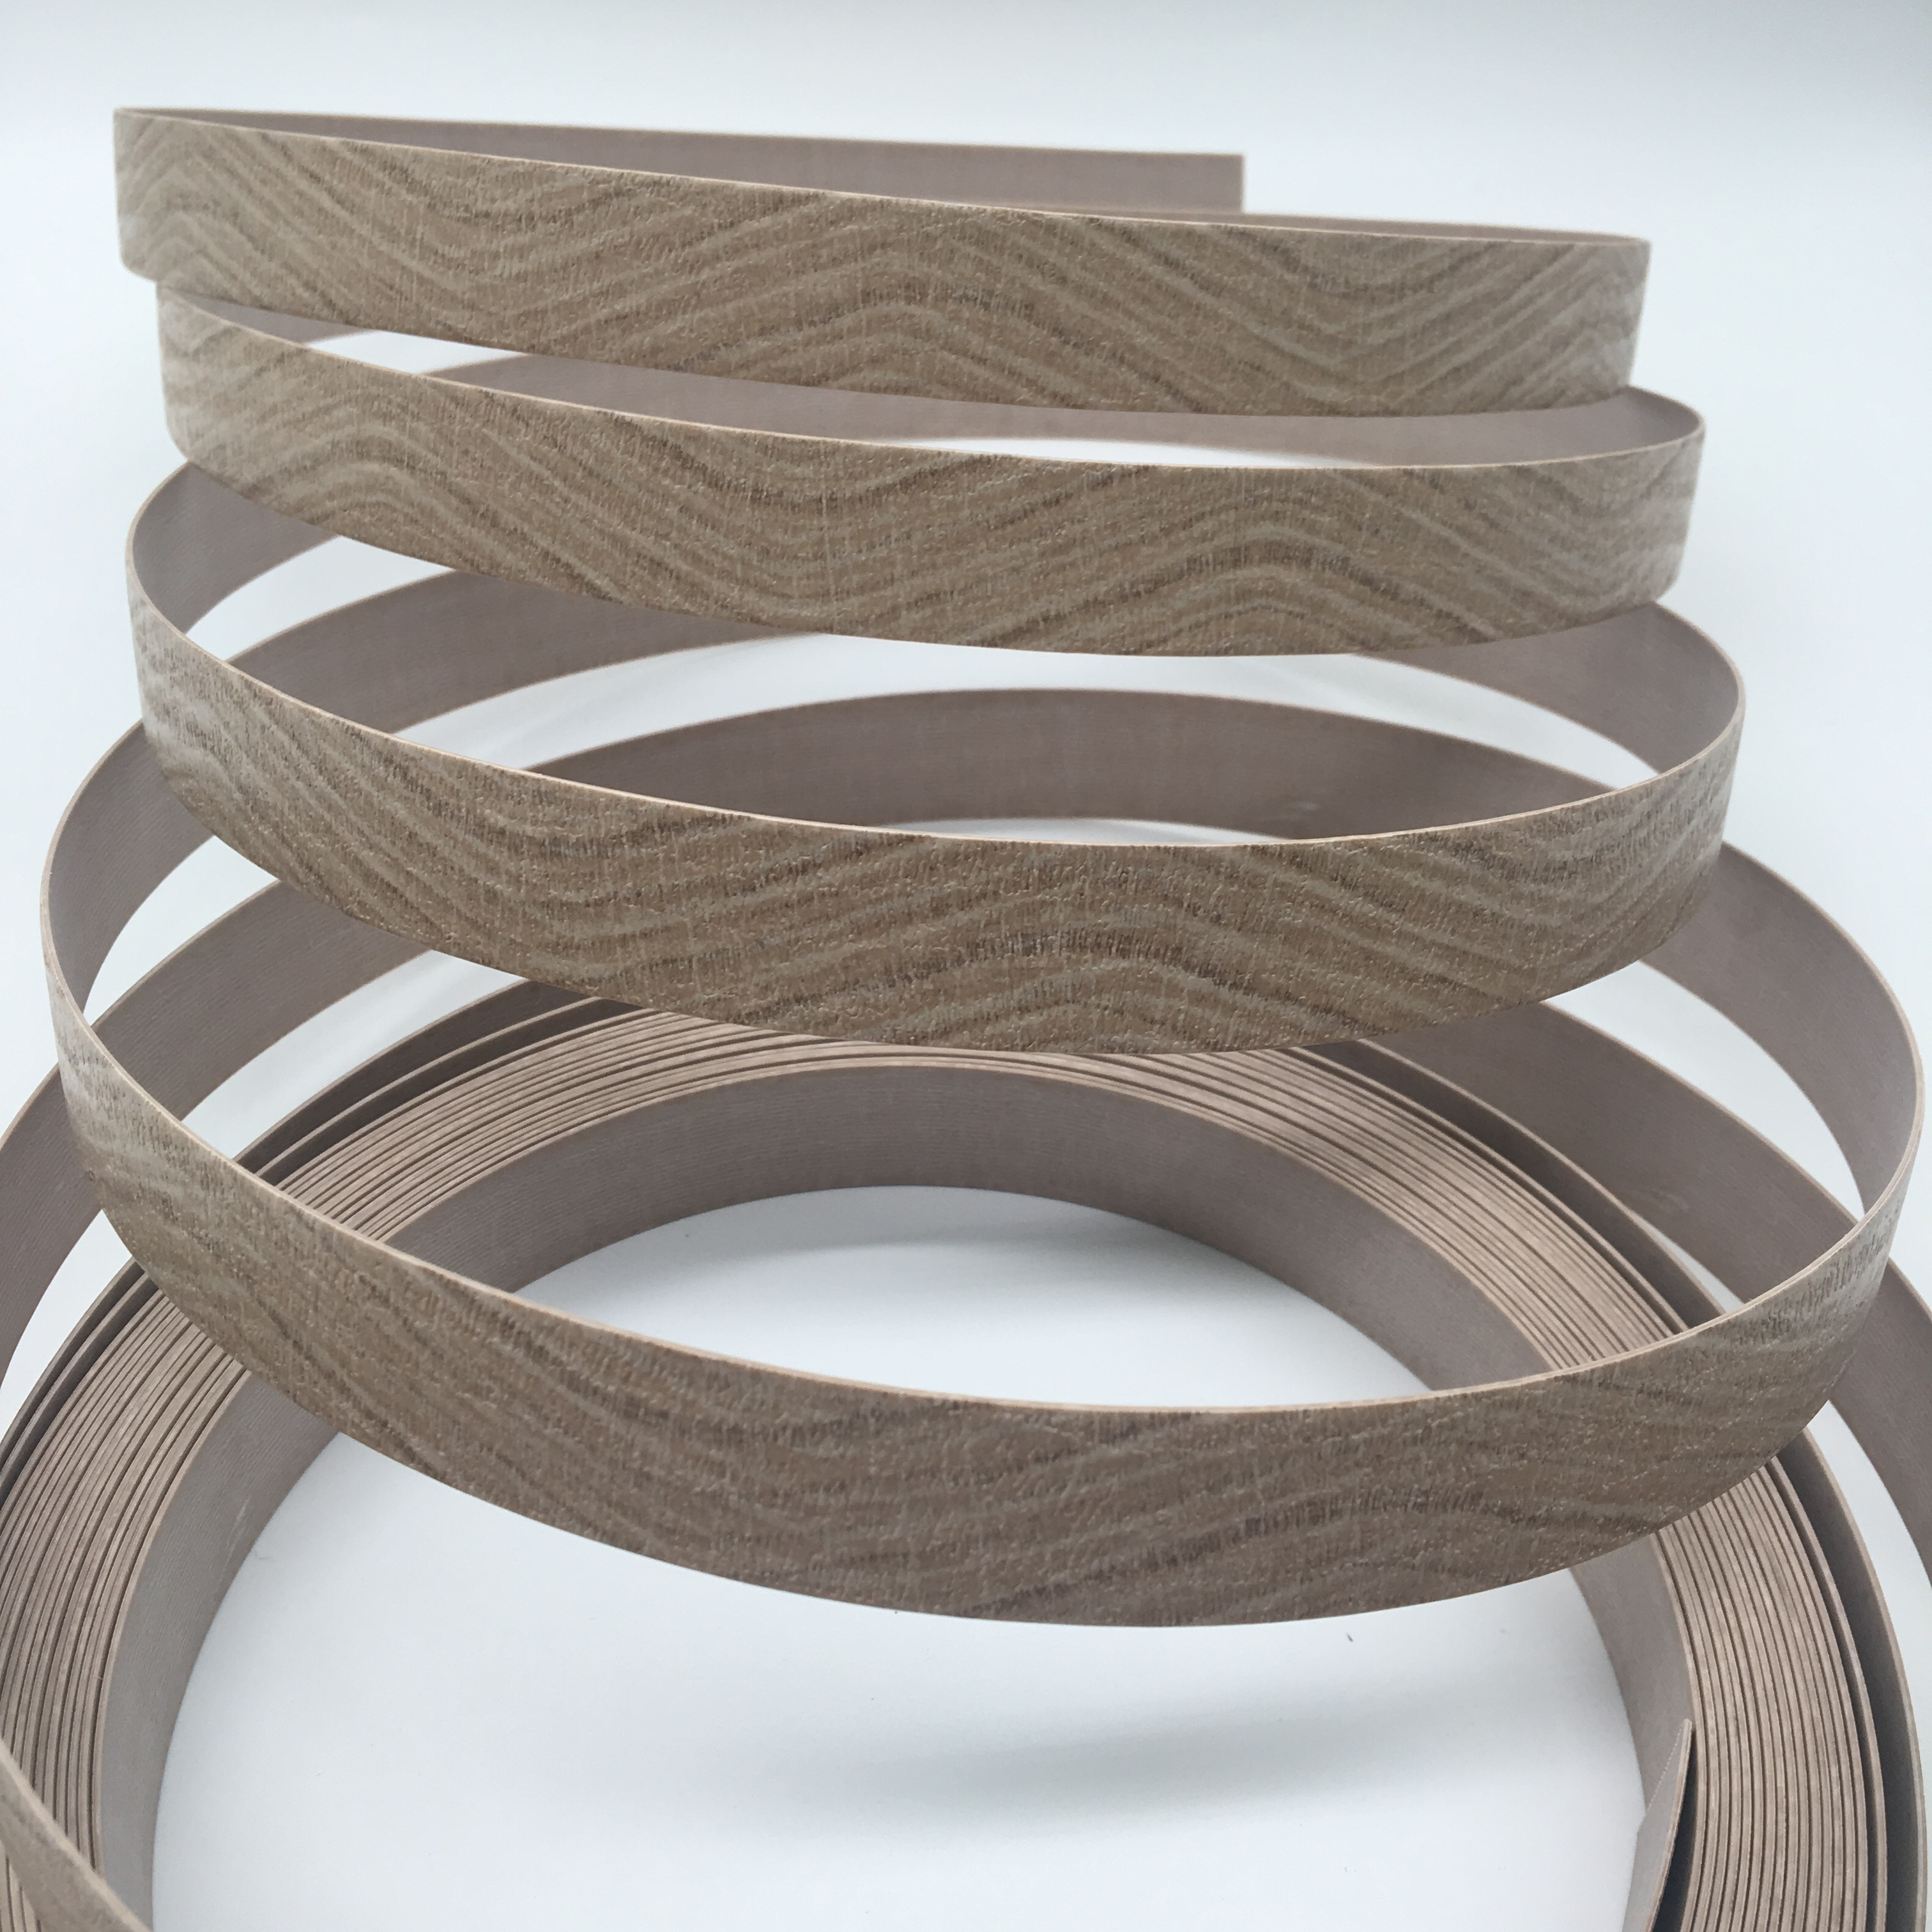 China Wooden Edge, China Wooden Edge Manufacturers and Suppliers on